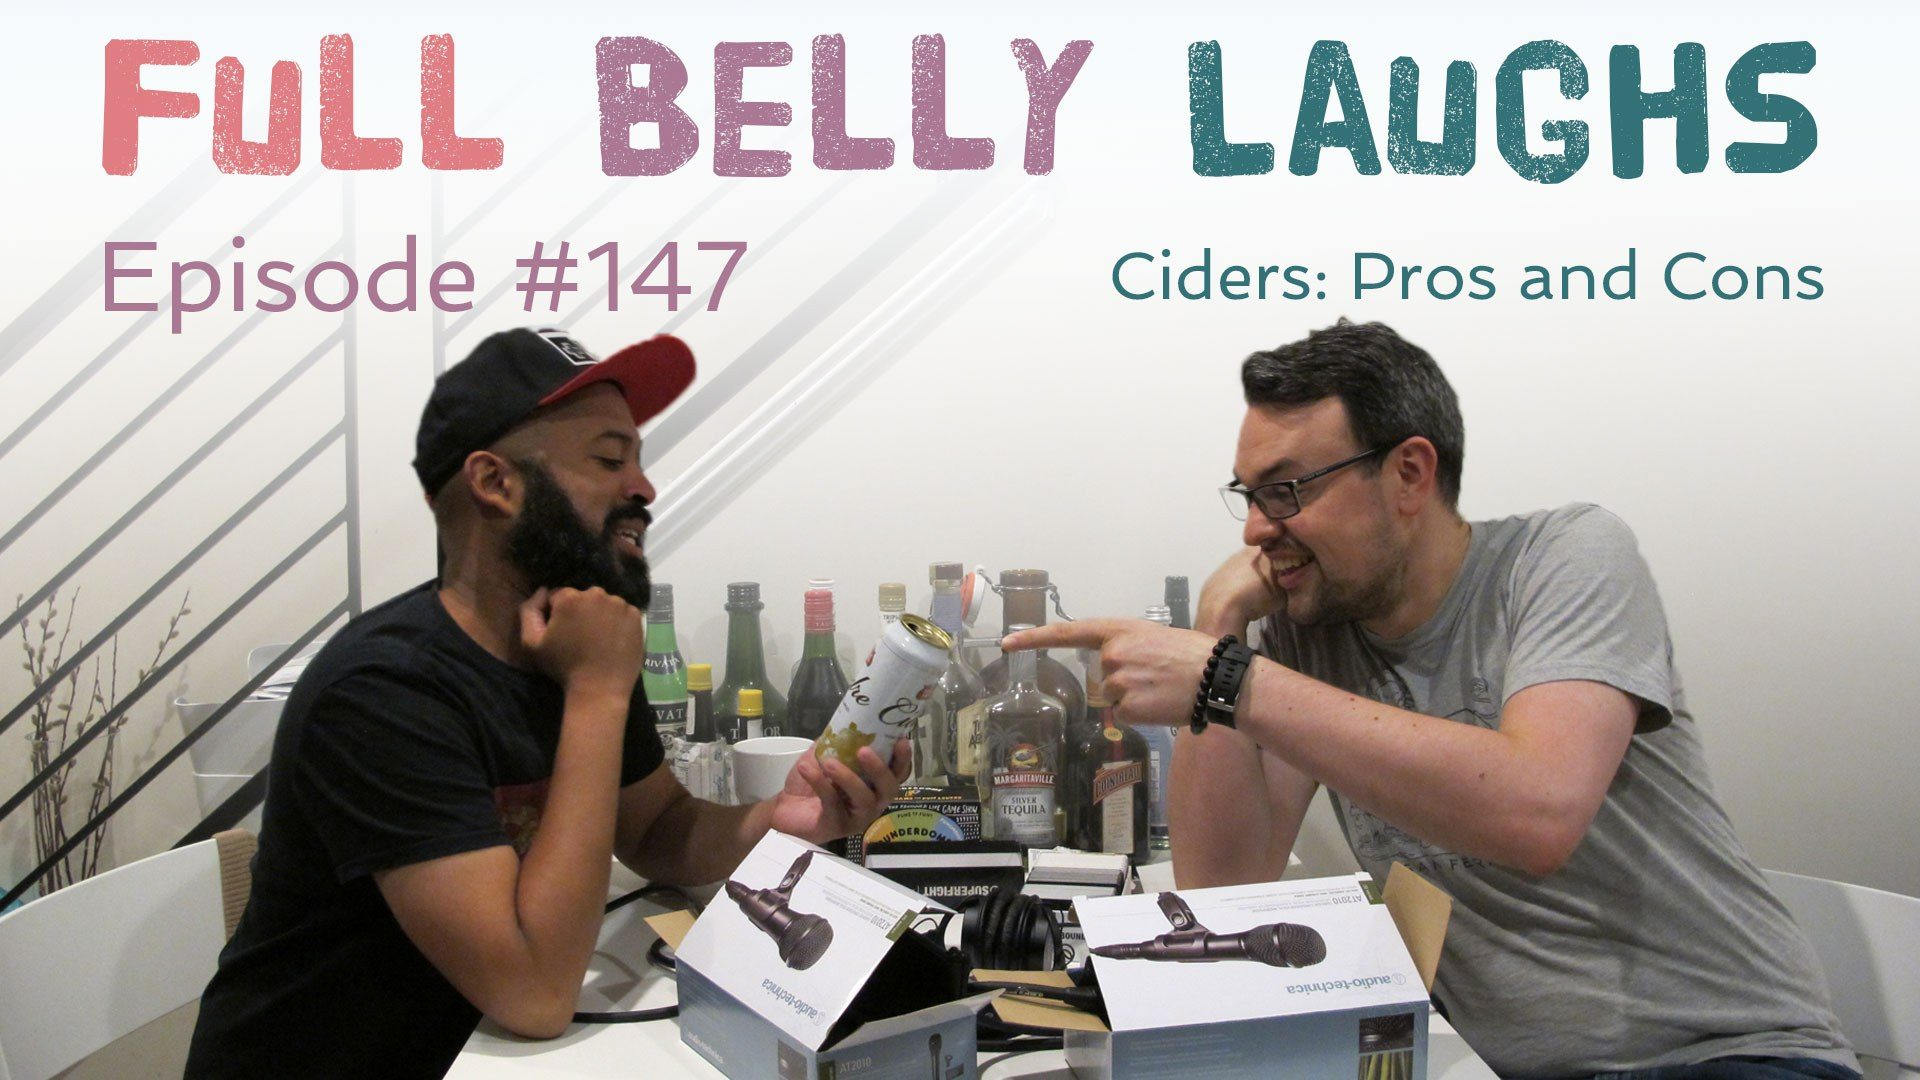 full belly laughs podcast episode 147 cider pros and cons audio artwork